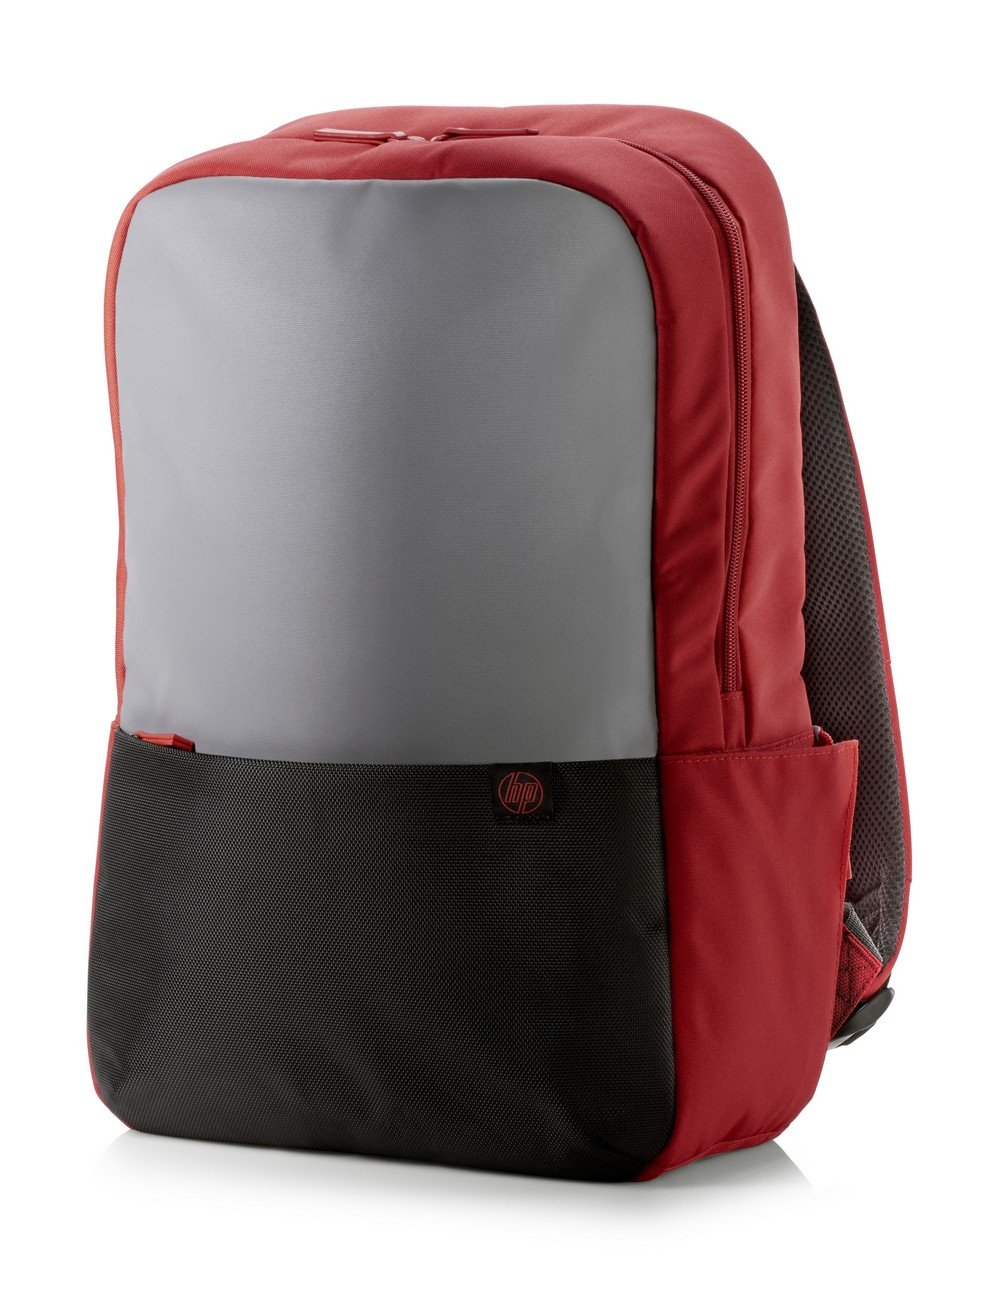 HP Duotone Y4T20AA#ACJ 15.6-inch Laptop Backpack (Red)